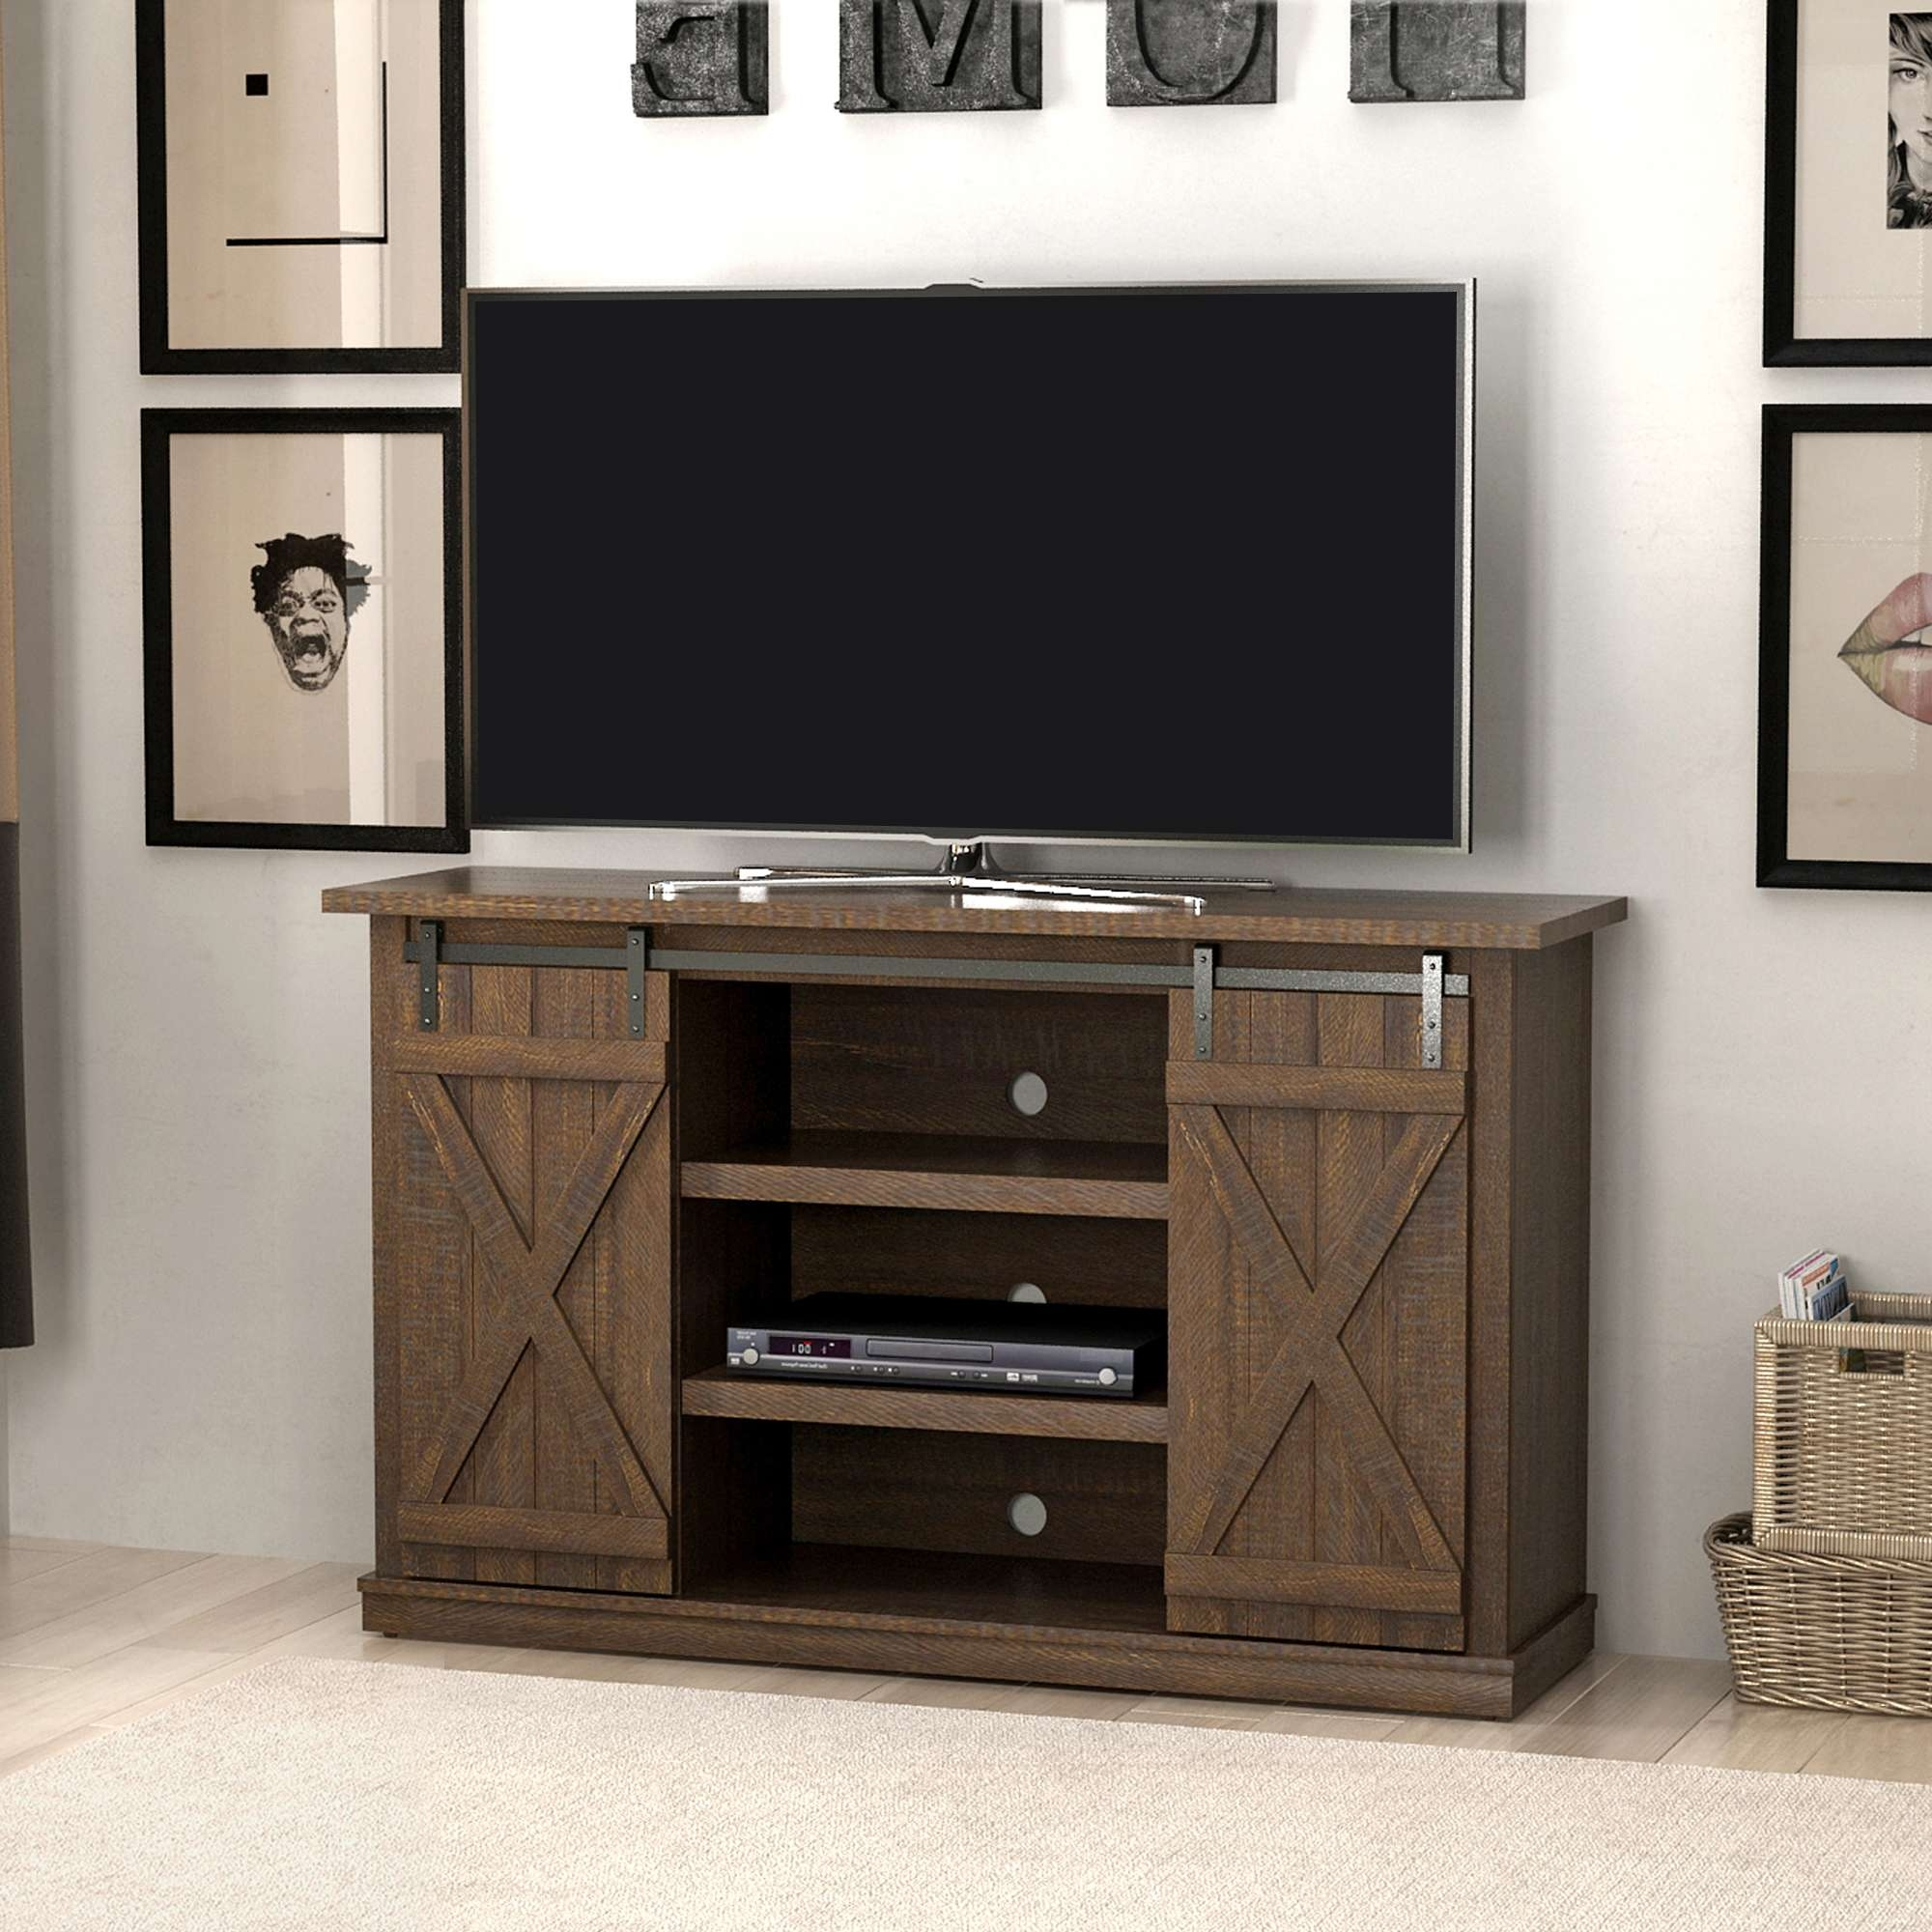 Tv Stands – Walmart With 84 Inch Tv Stands (View 12 of 15)